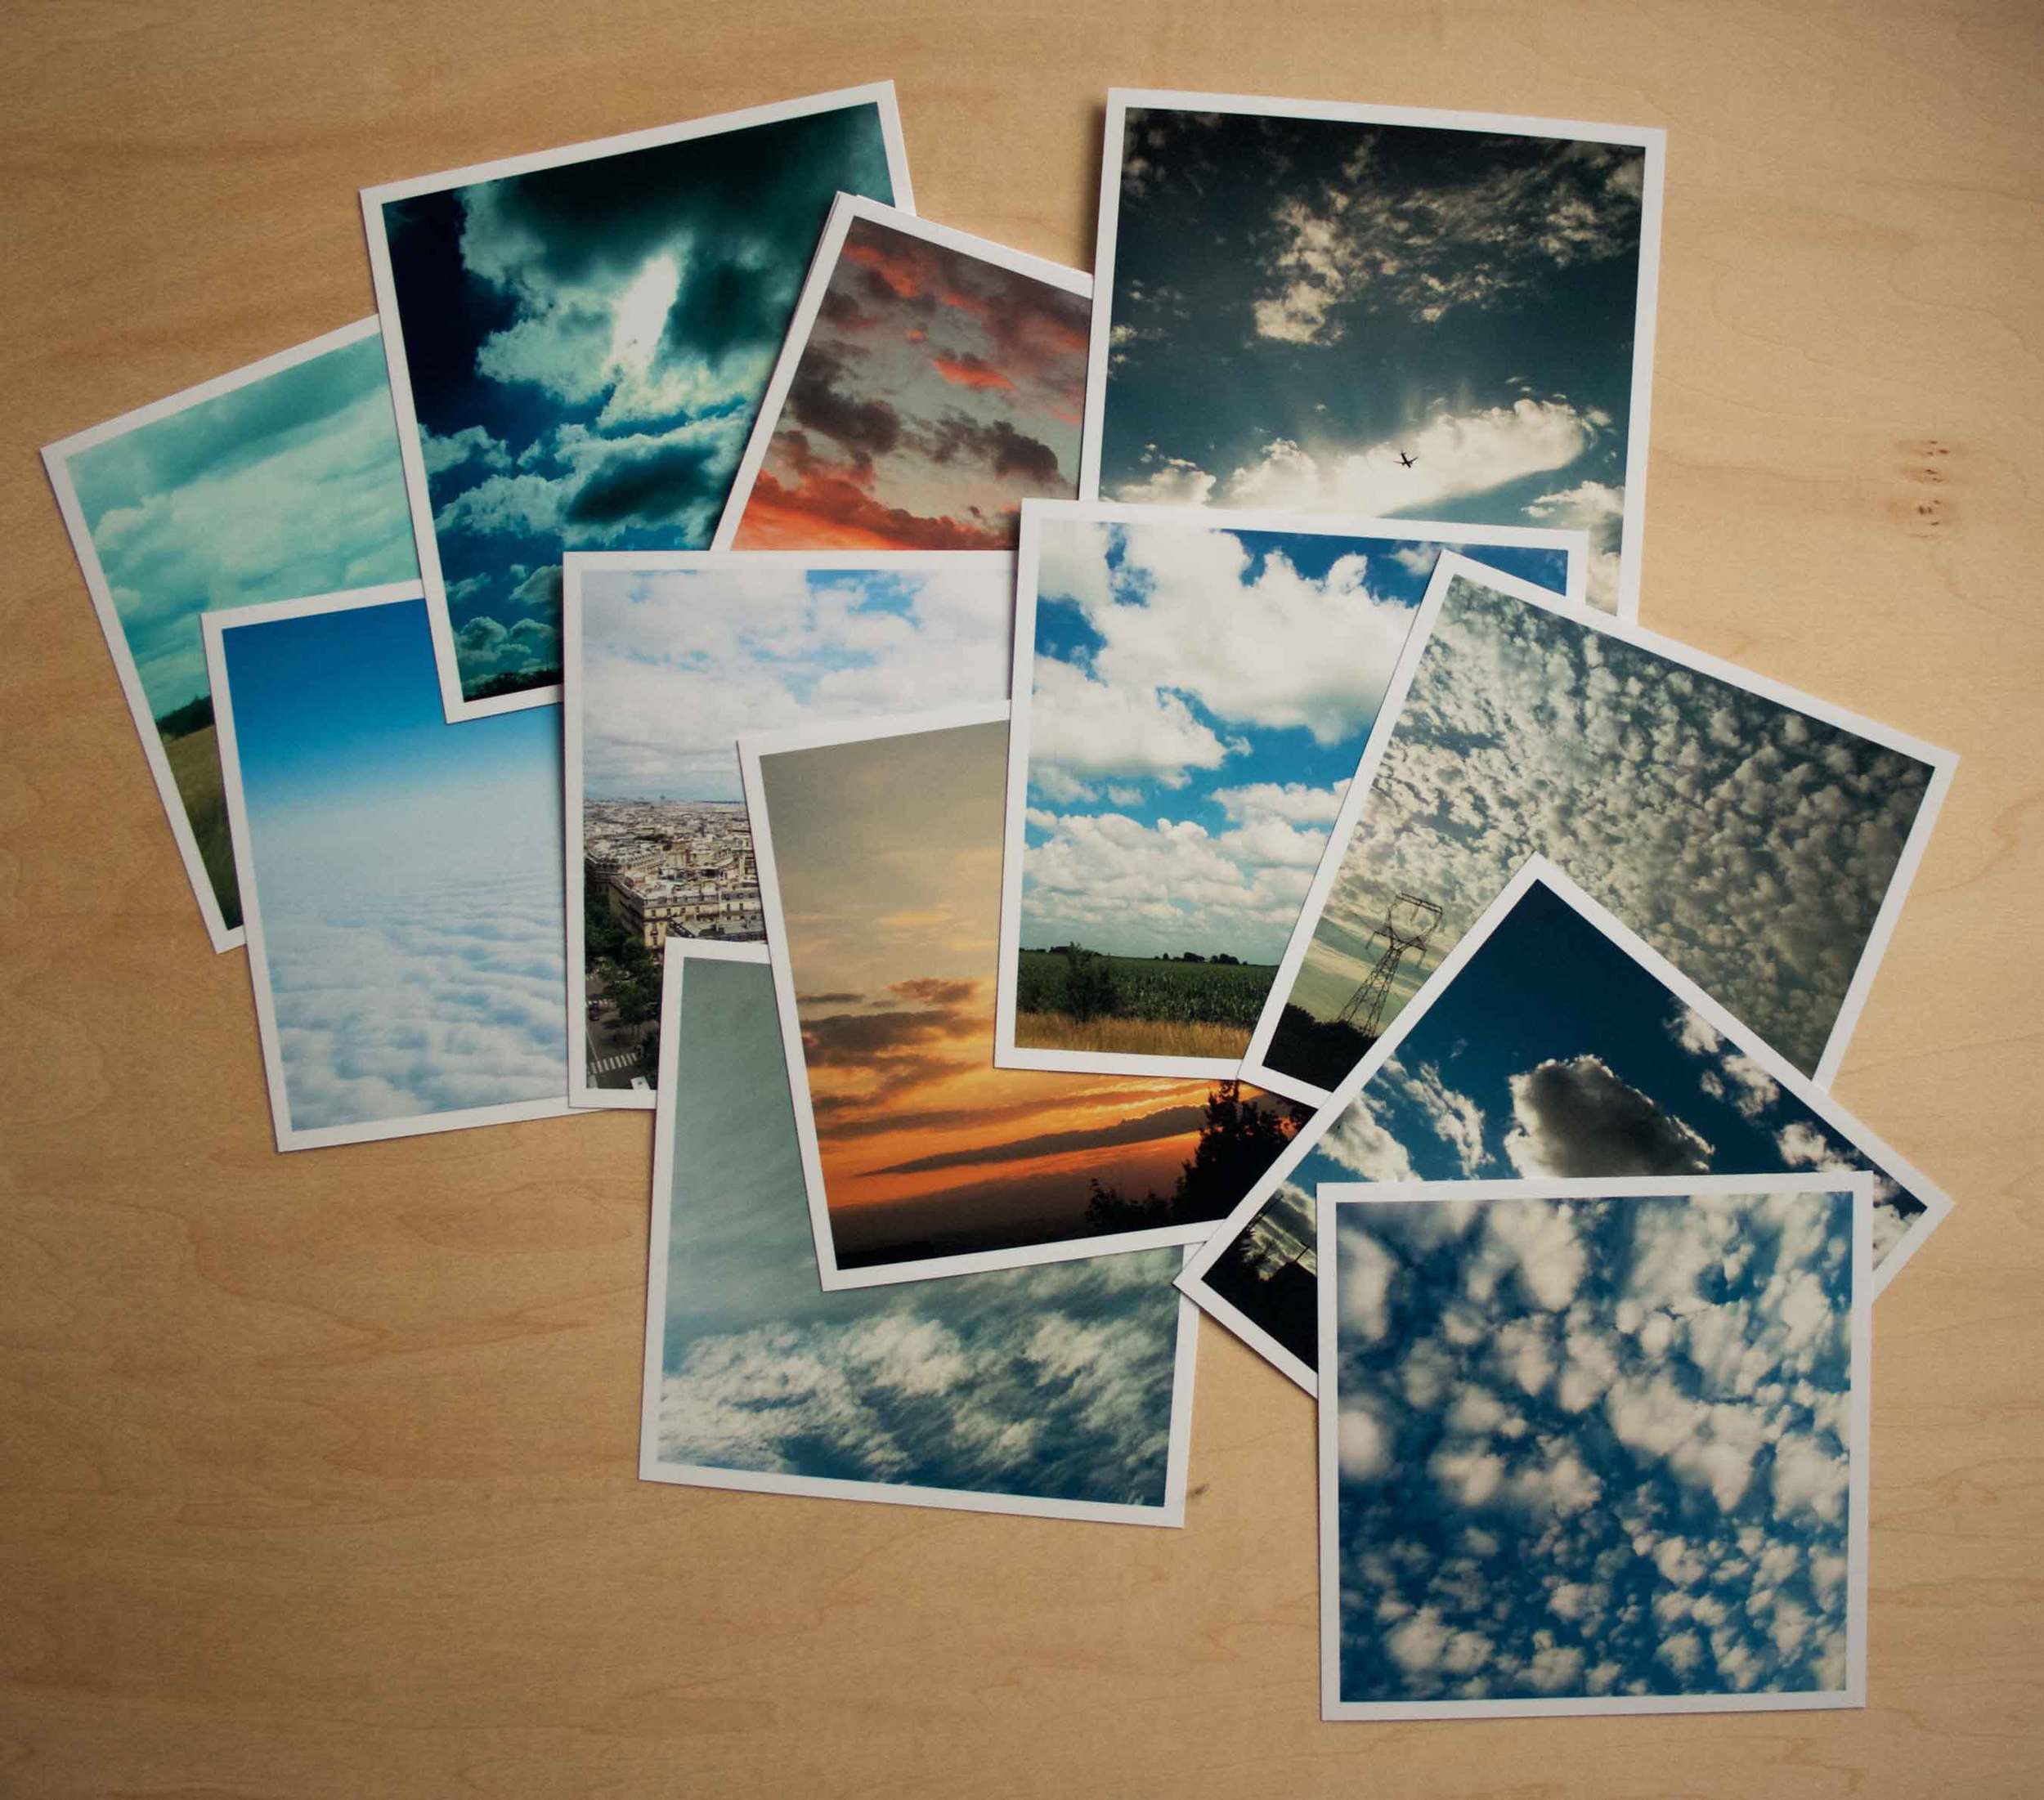 Cloud collecting, cloud photos, handmade accordion book project, Thread & Whisk